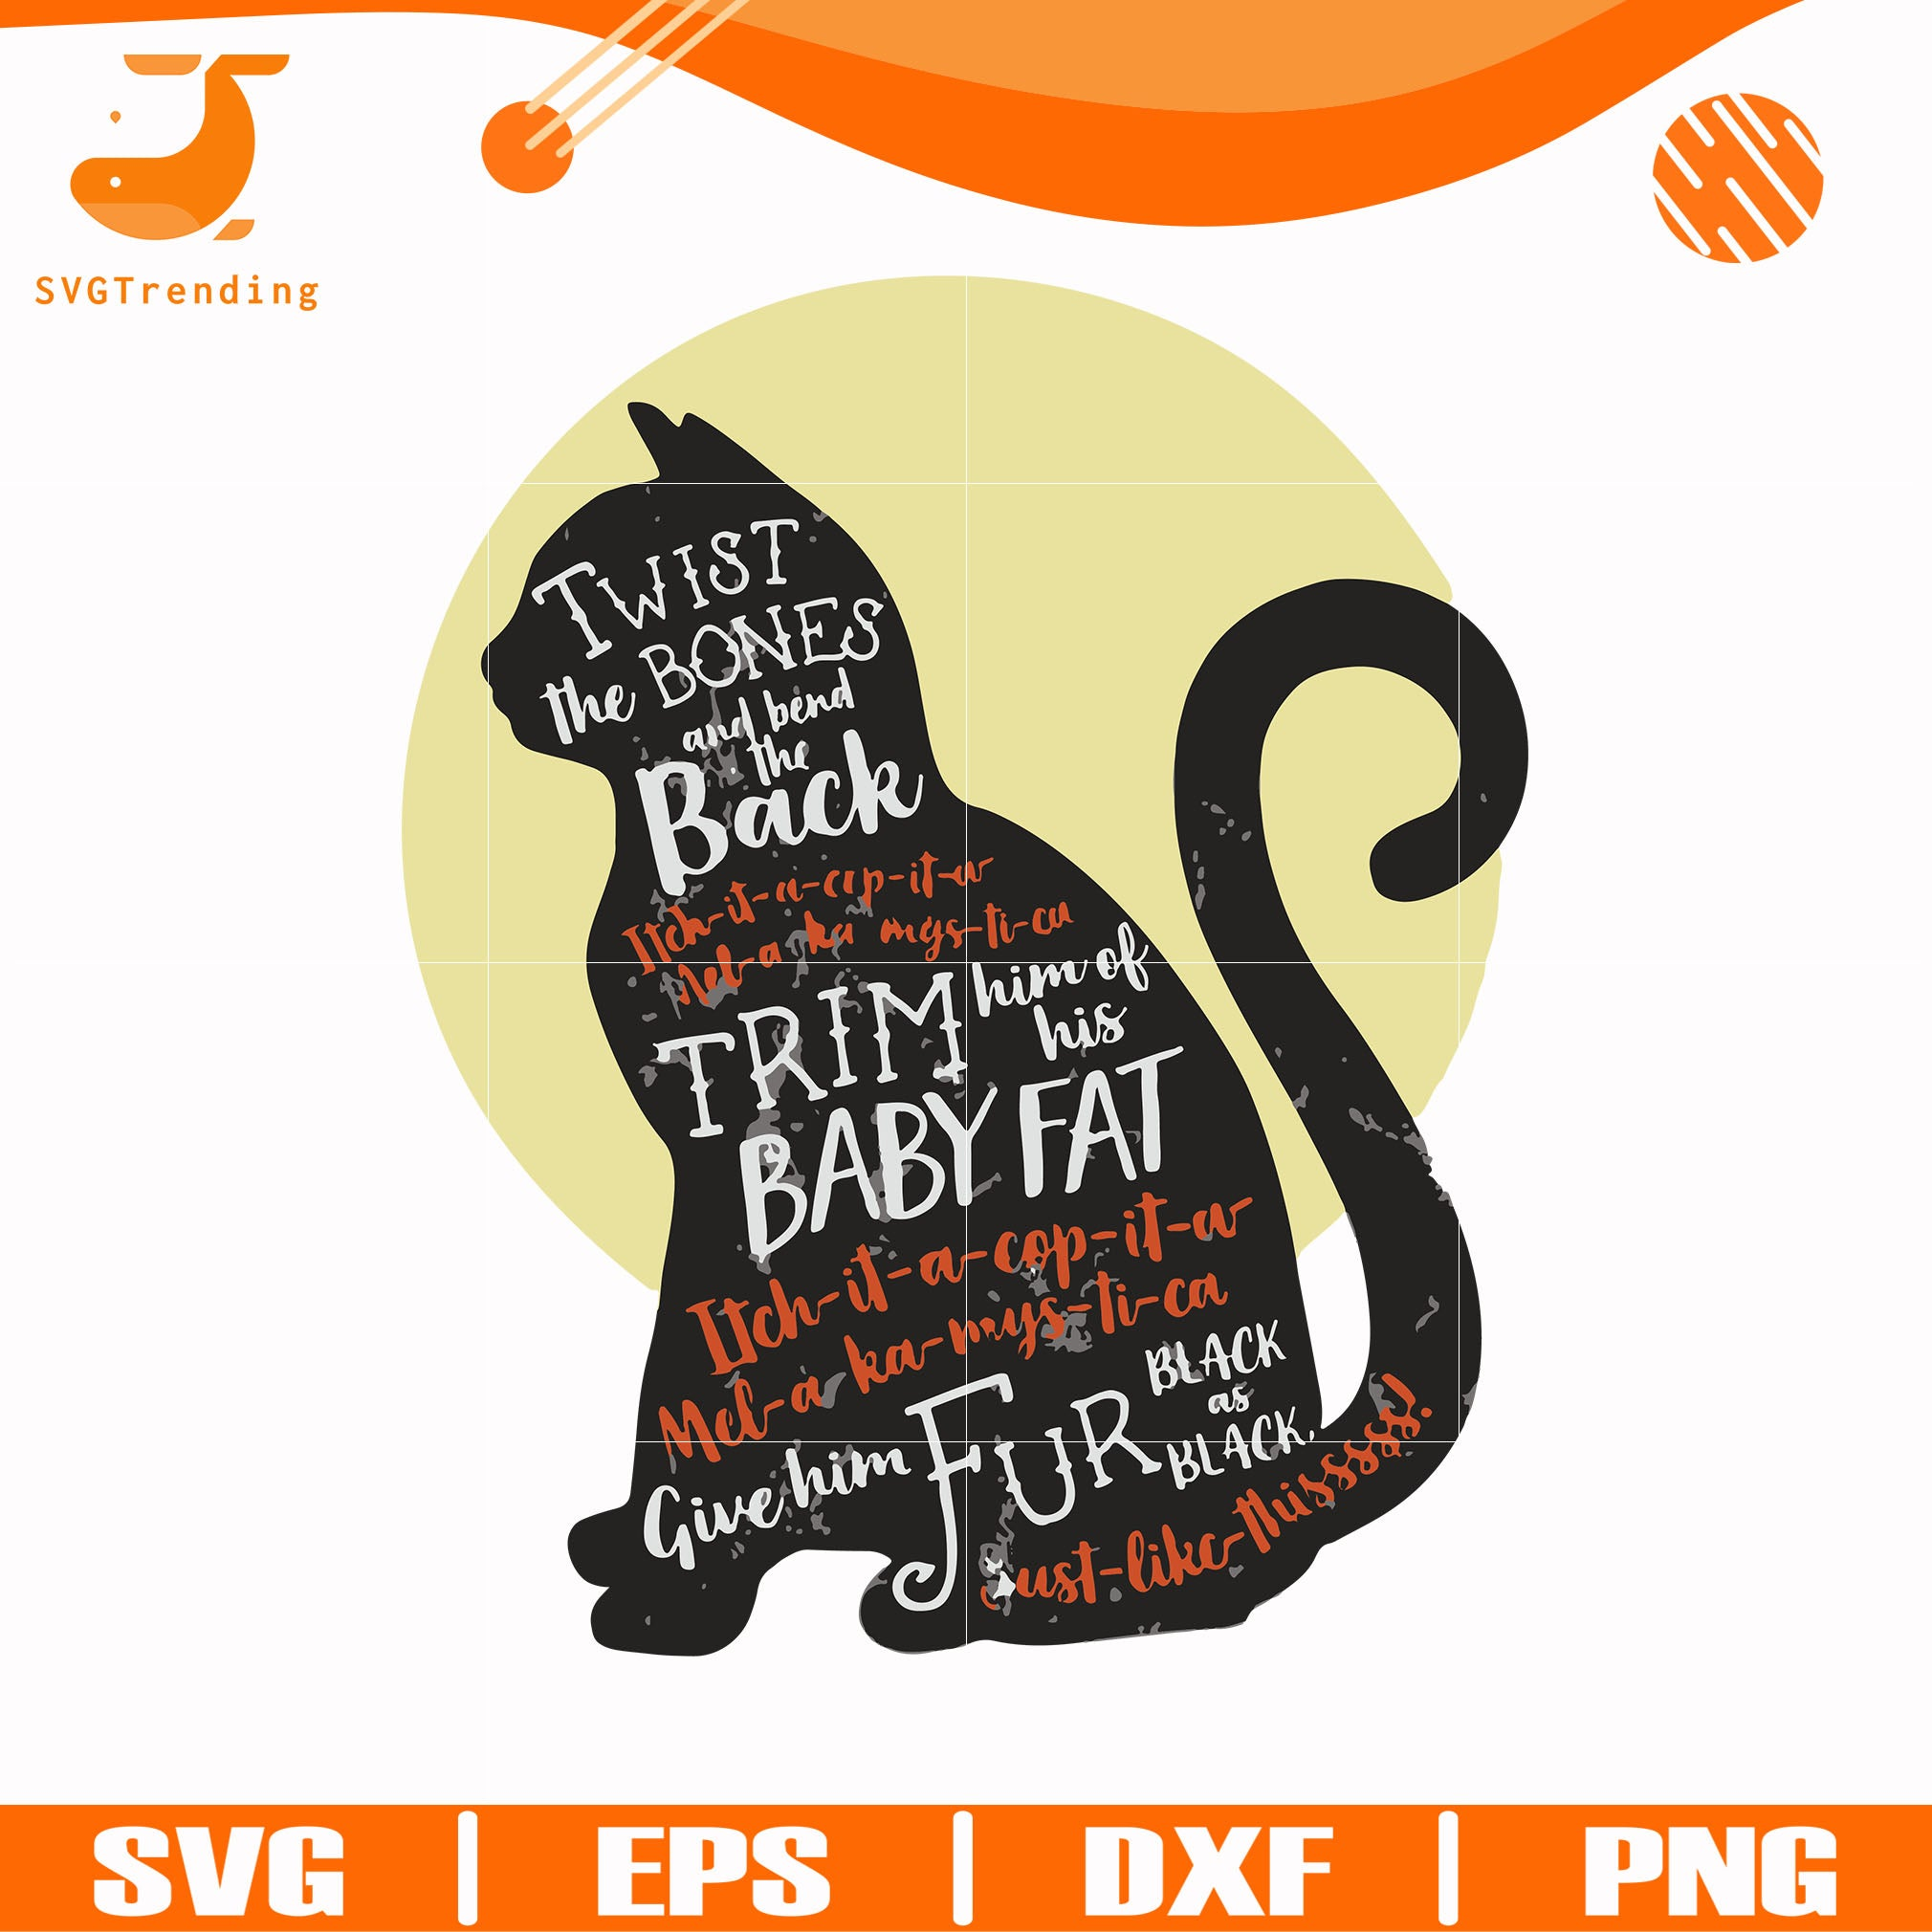 Twist The Bones And Bend The Back Cat Svg Halloween Svg Png Dxf Ep Svgtrending